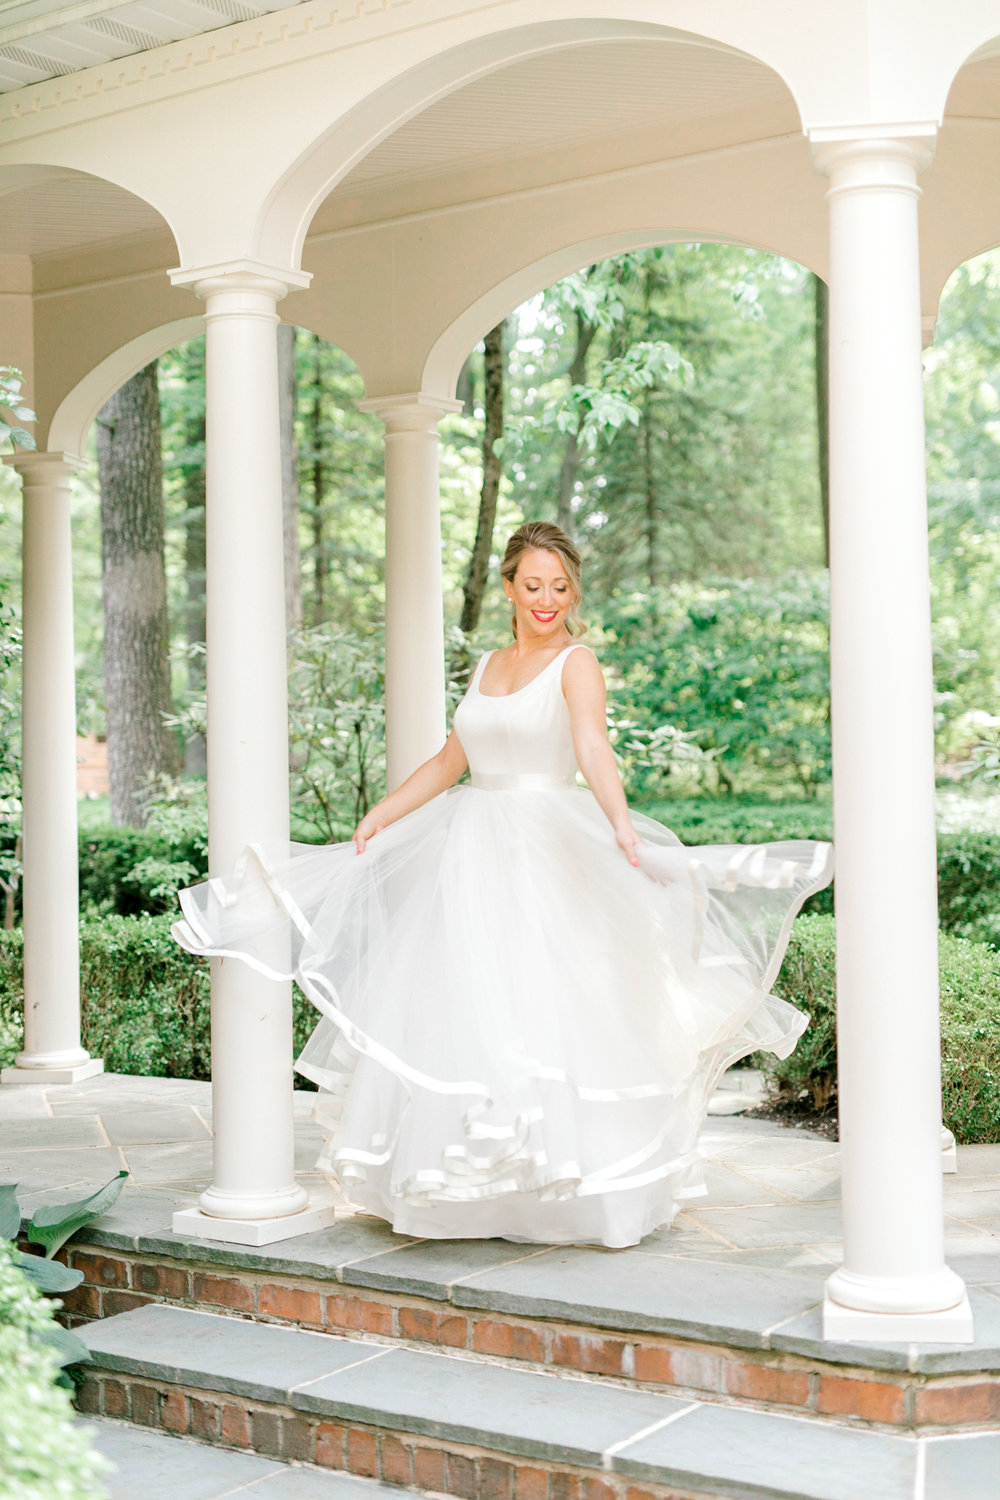 Kerry had so much fun twirly around in the flirty flowing white gown she wore on her wedding day. It fit right in with the bright Italian themed wedding day she had at the Baltimore Country Club.